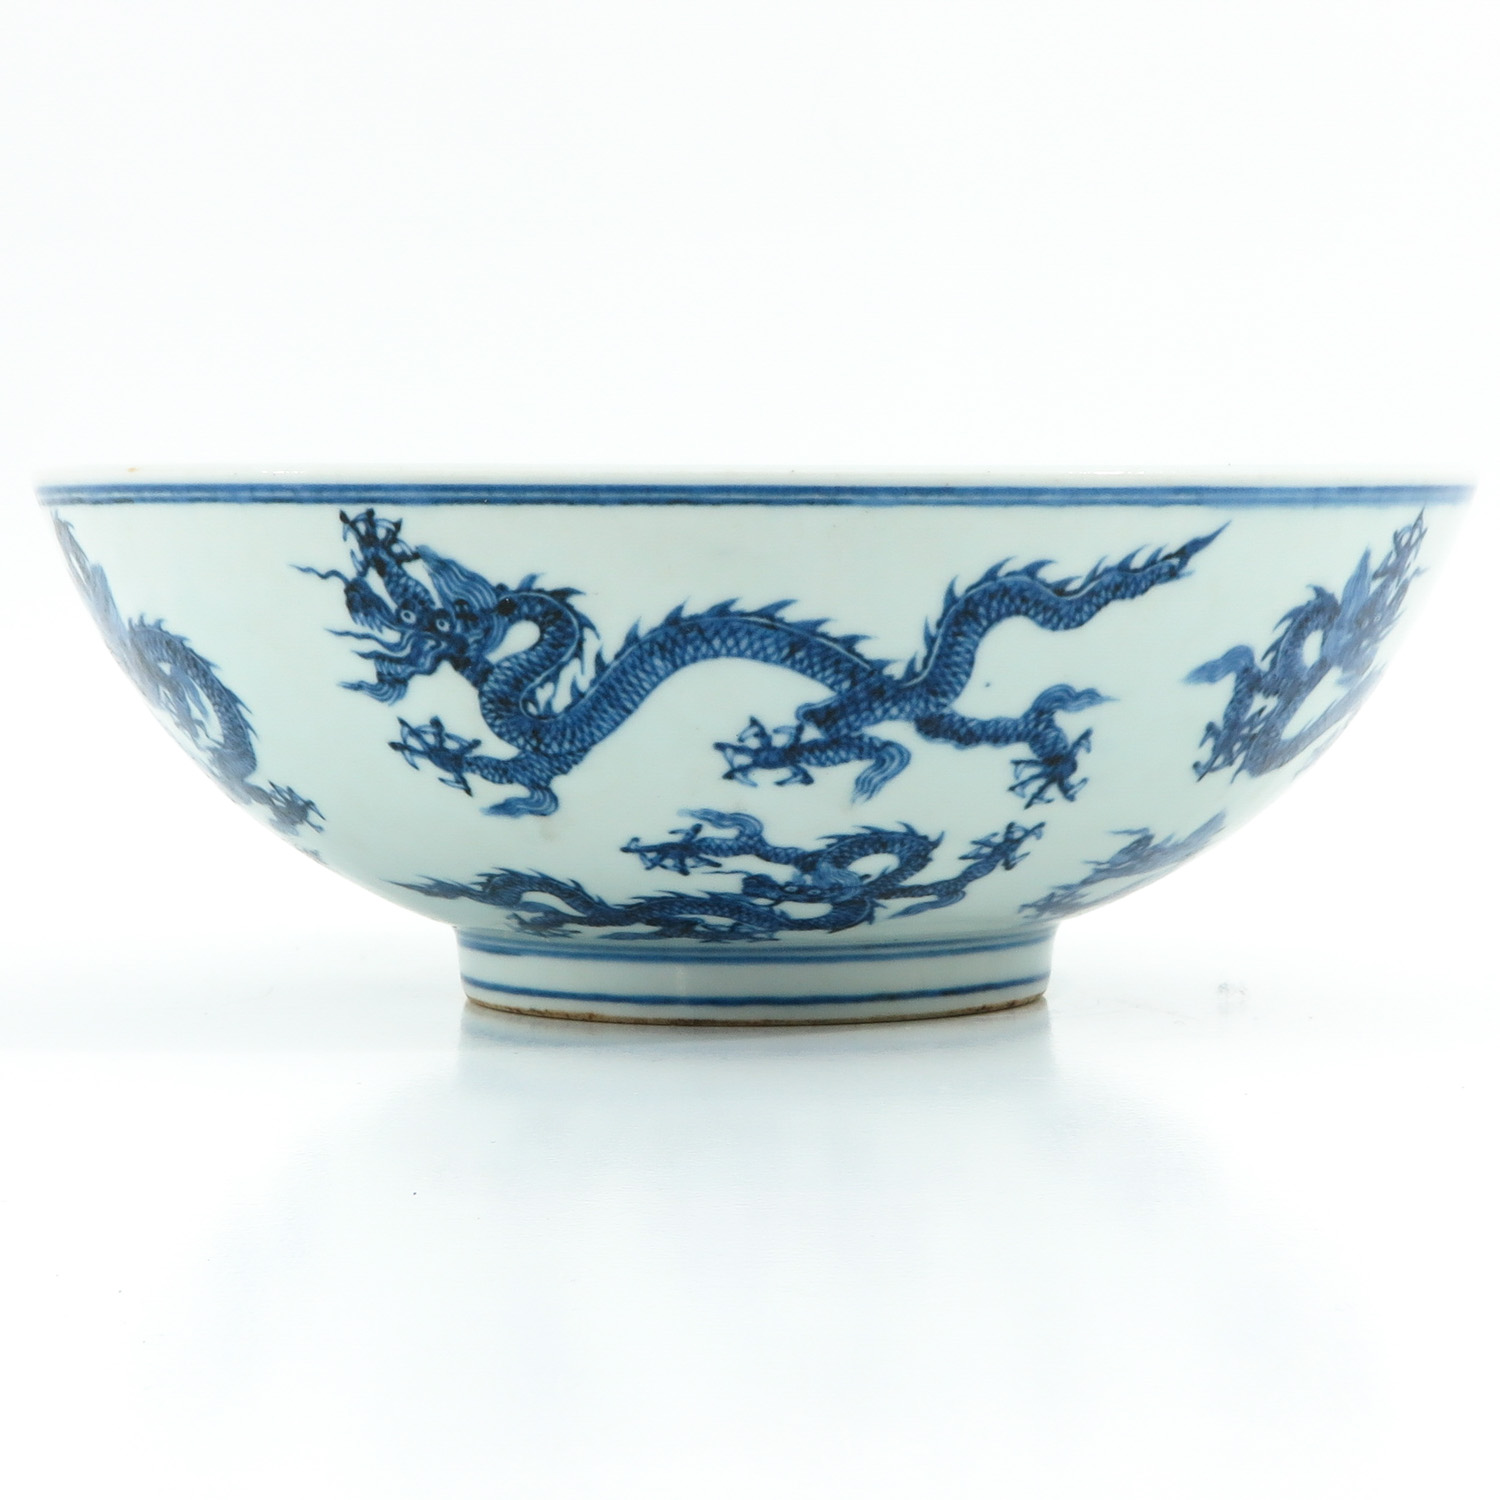 A Blue and White Bowl - Image 2 of 9